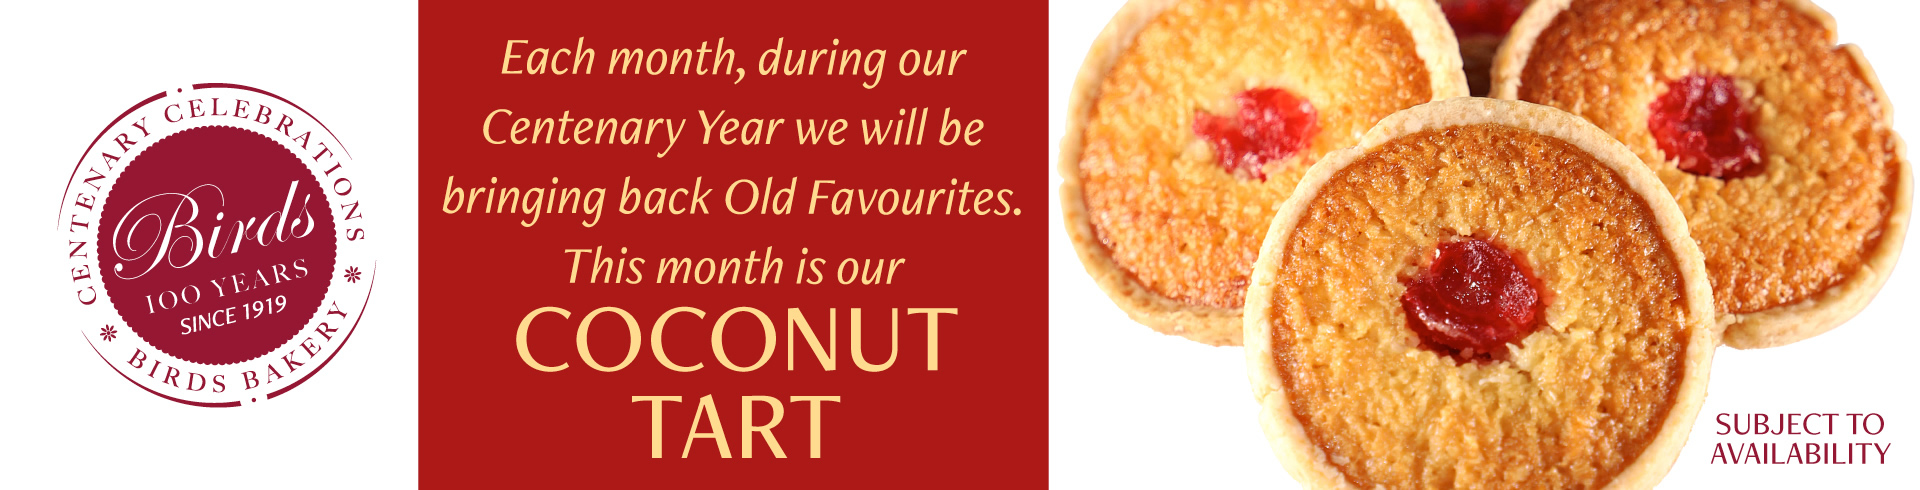 Each month, during our Centenary Year we will be bringing back Old Favourites. This month is our Coconut Tart